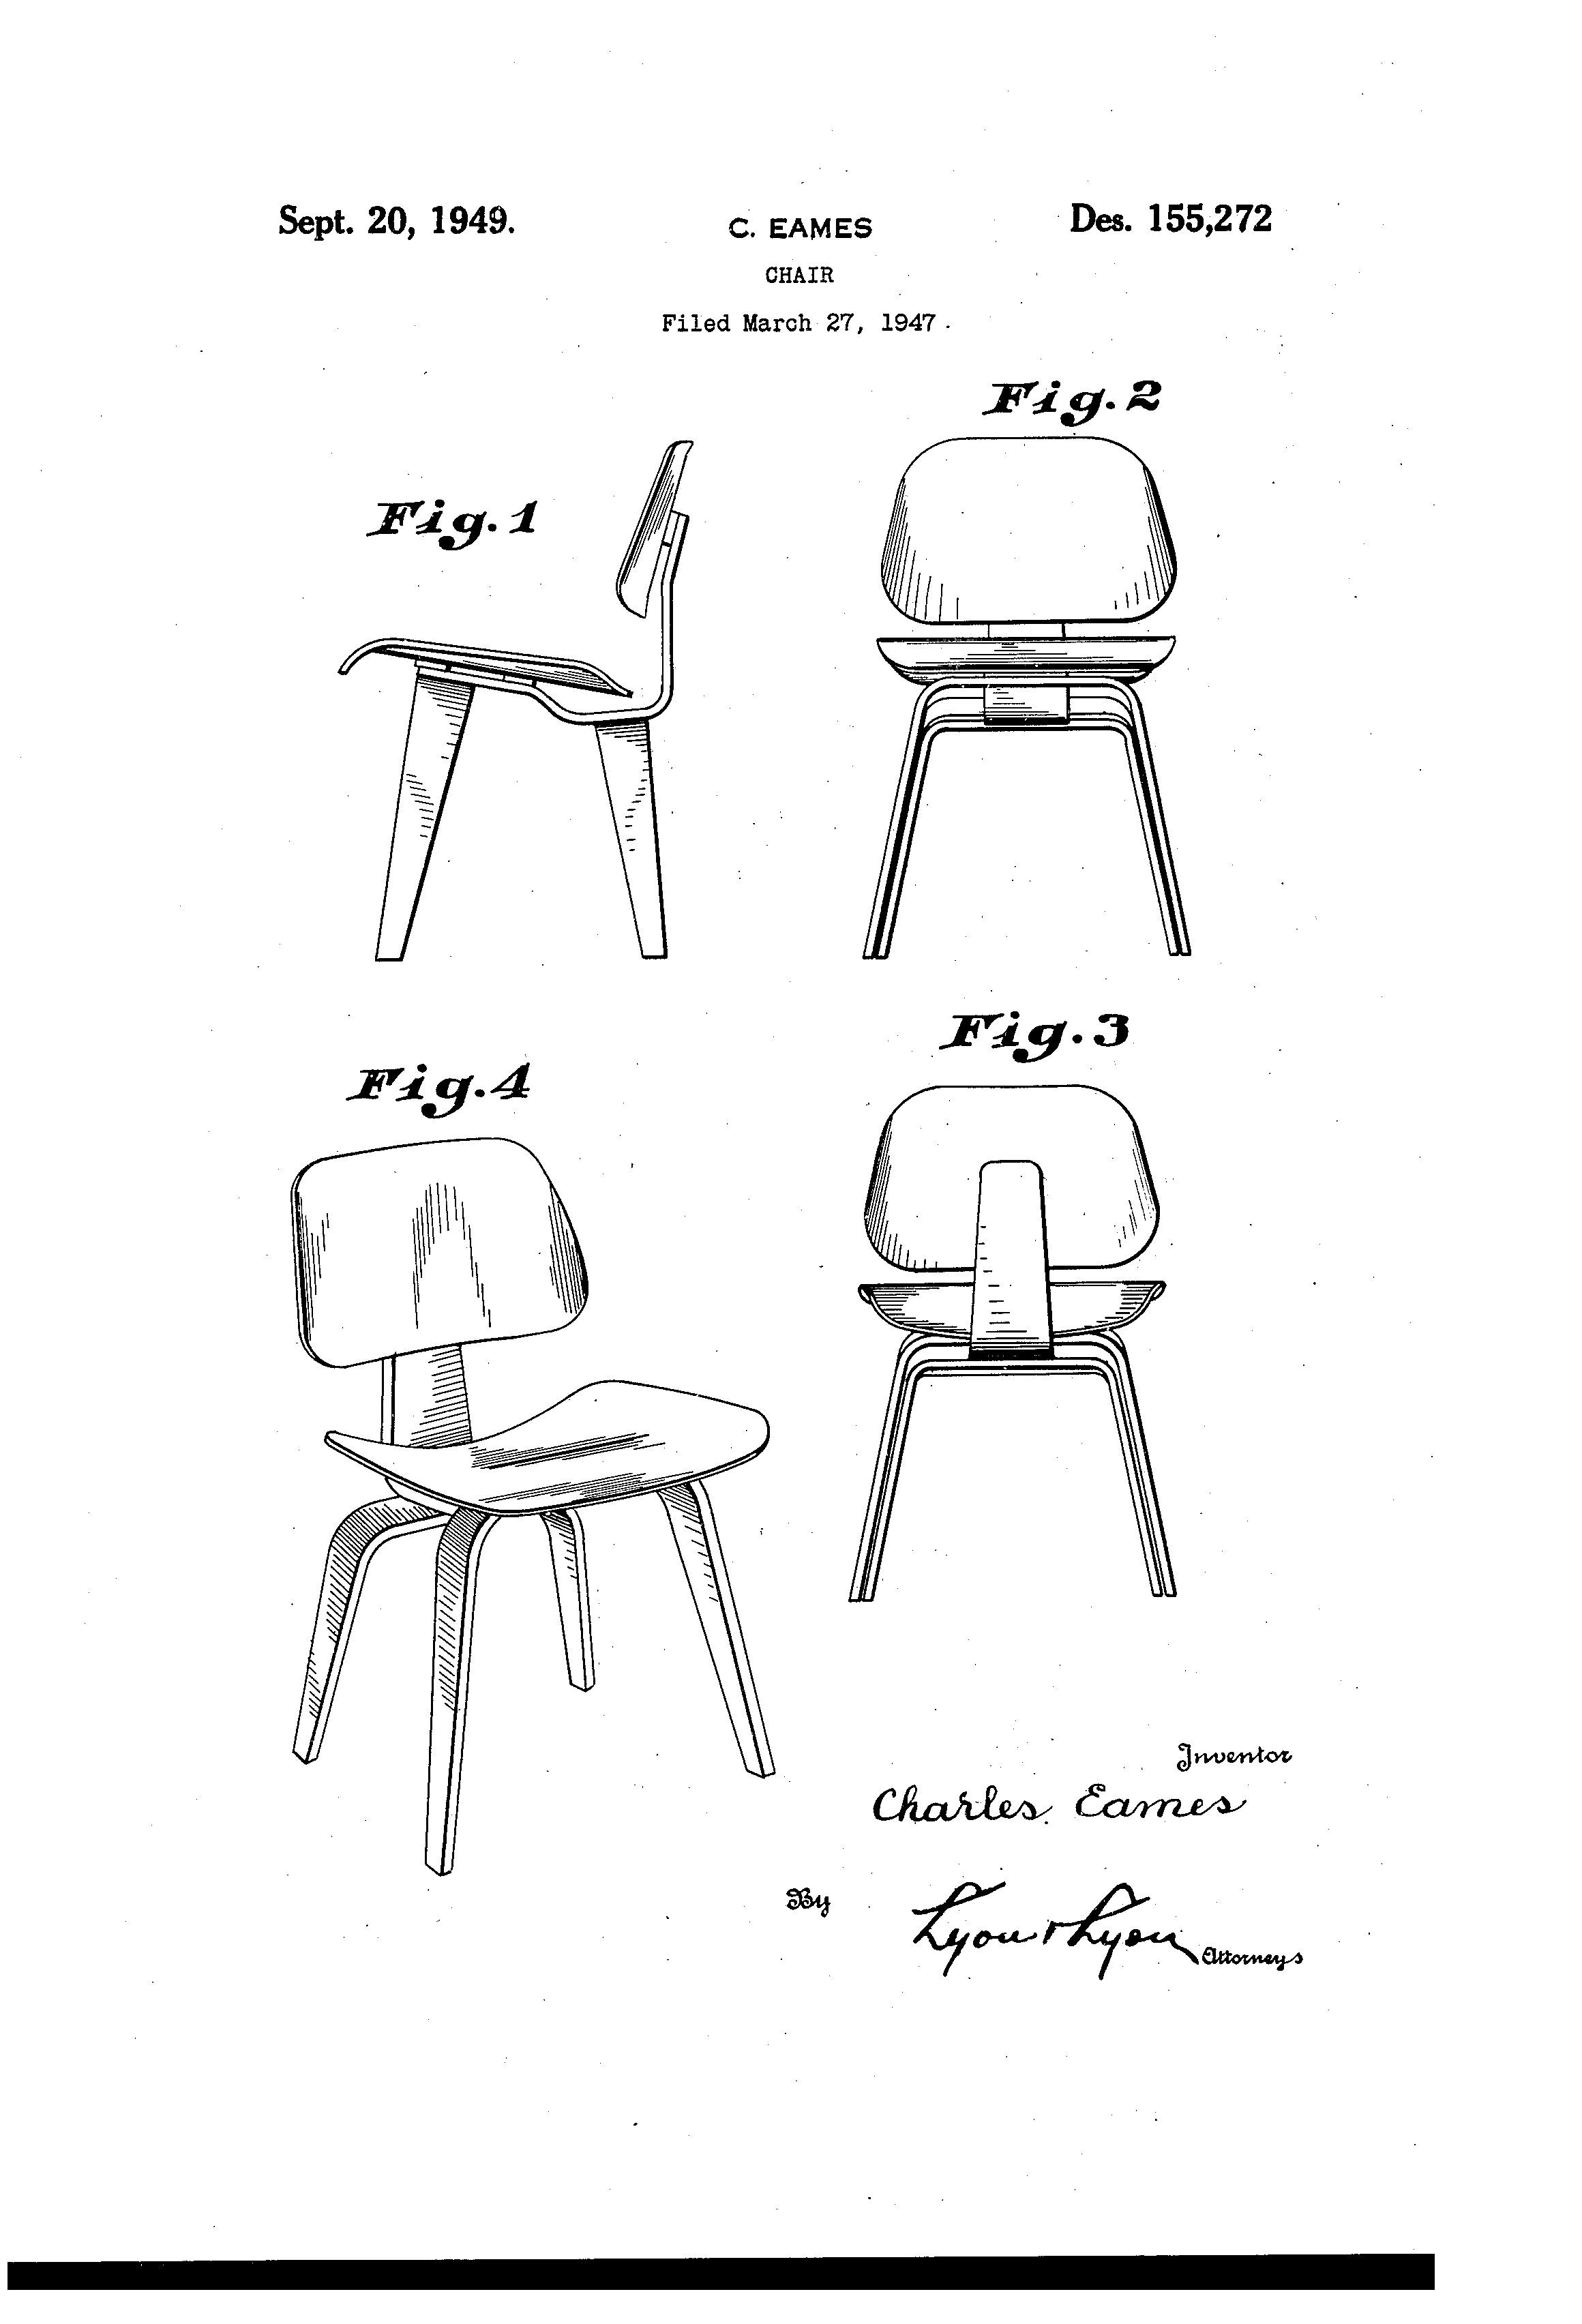 chair design patent reclining office chairs usd155272 for a google patents eames print